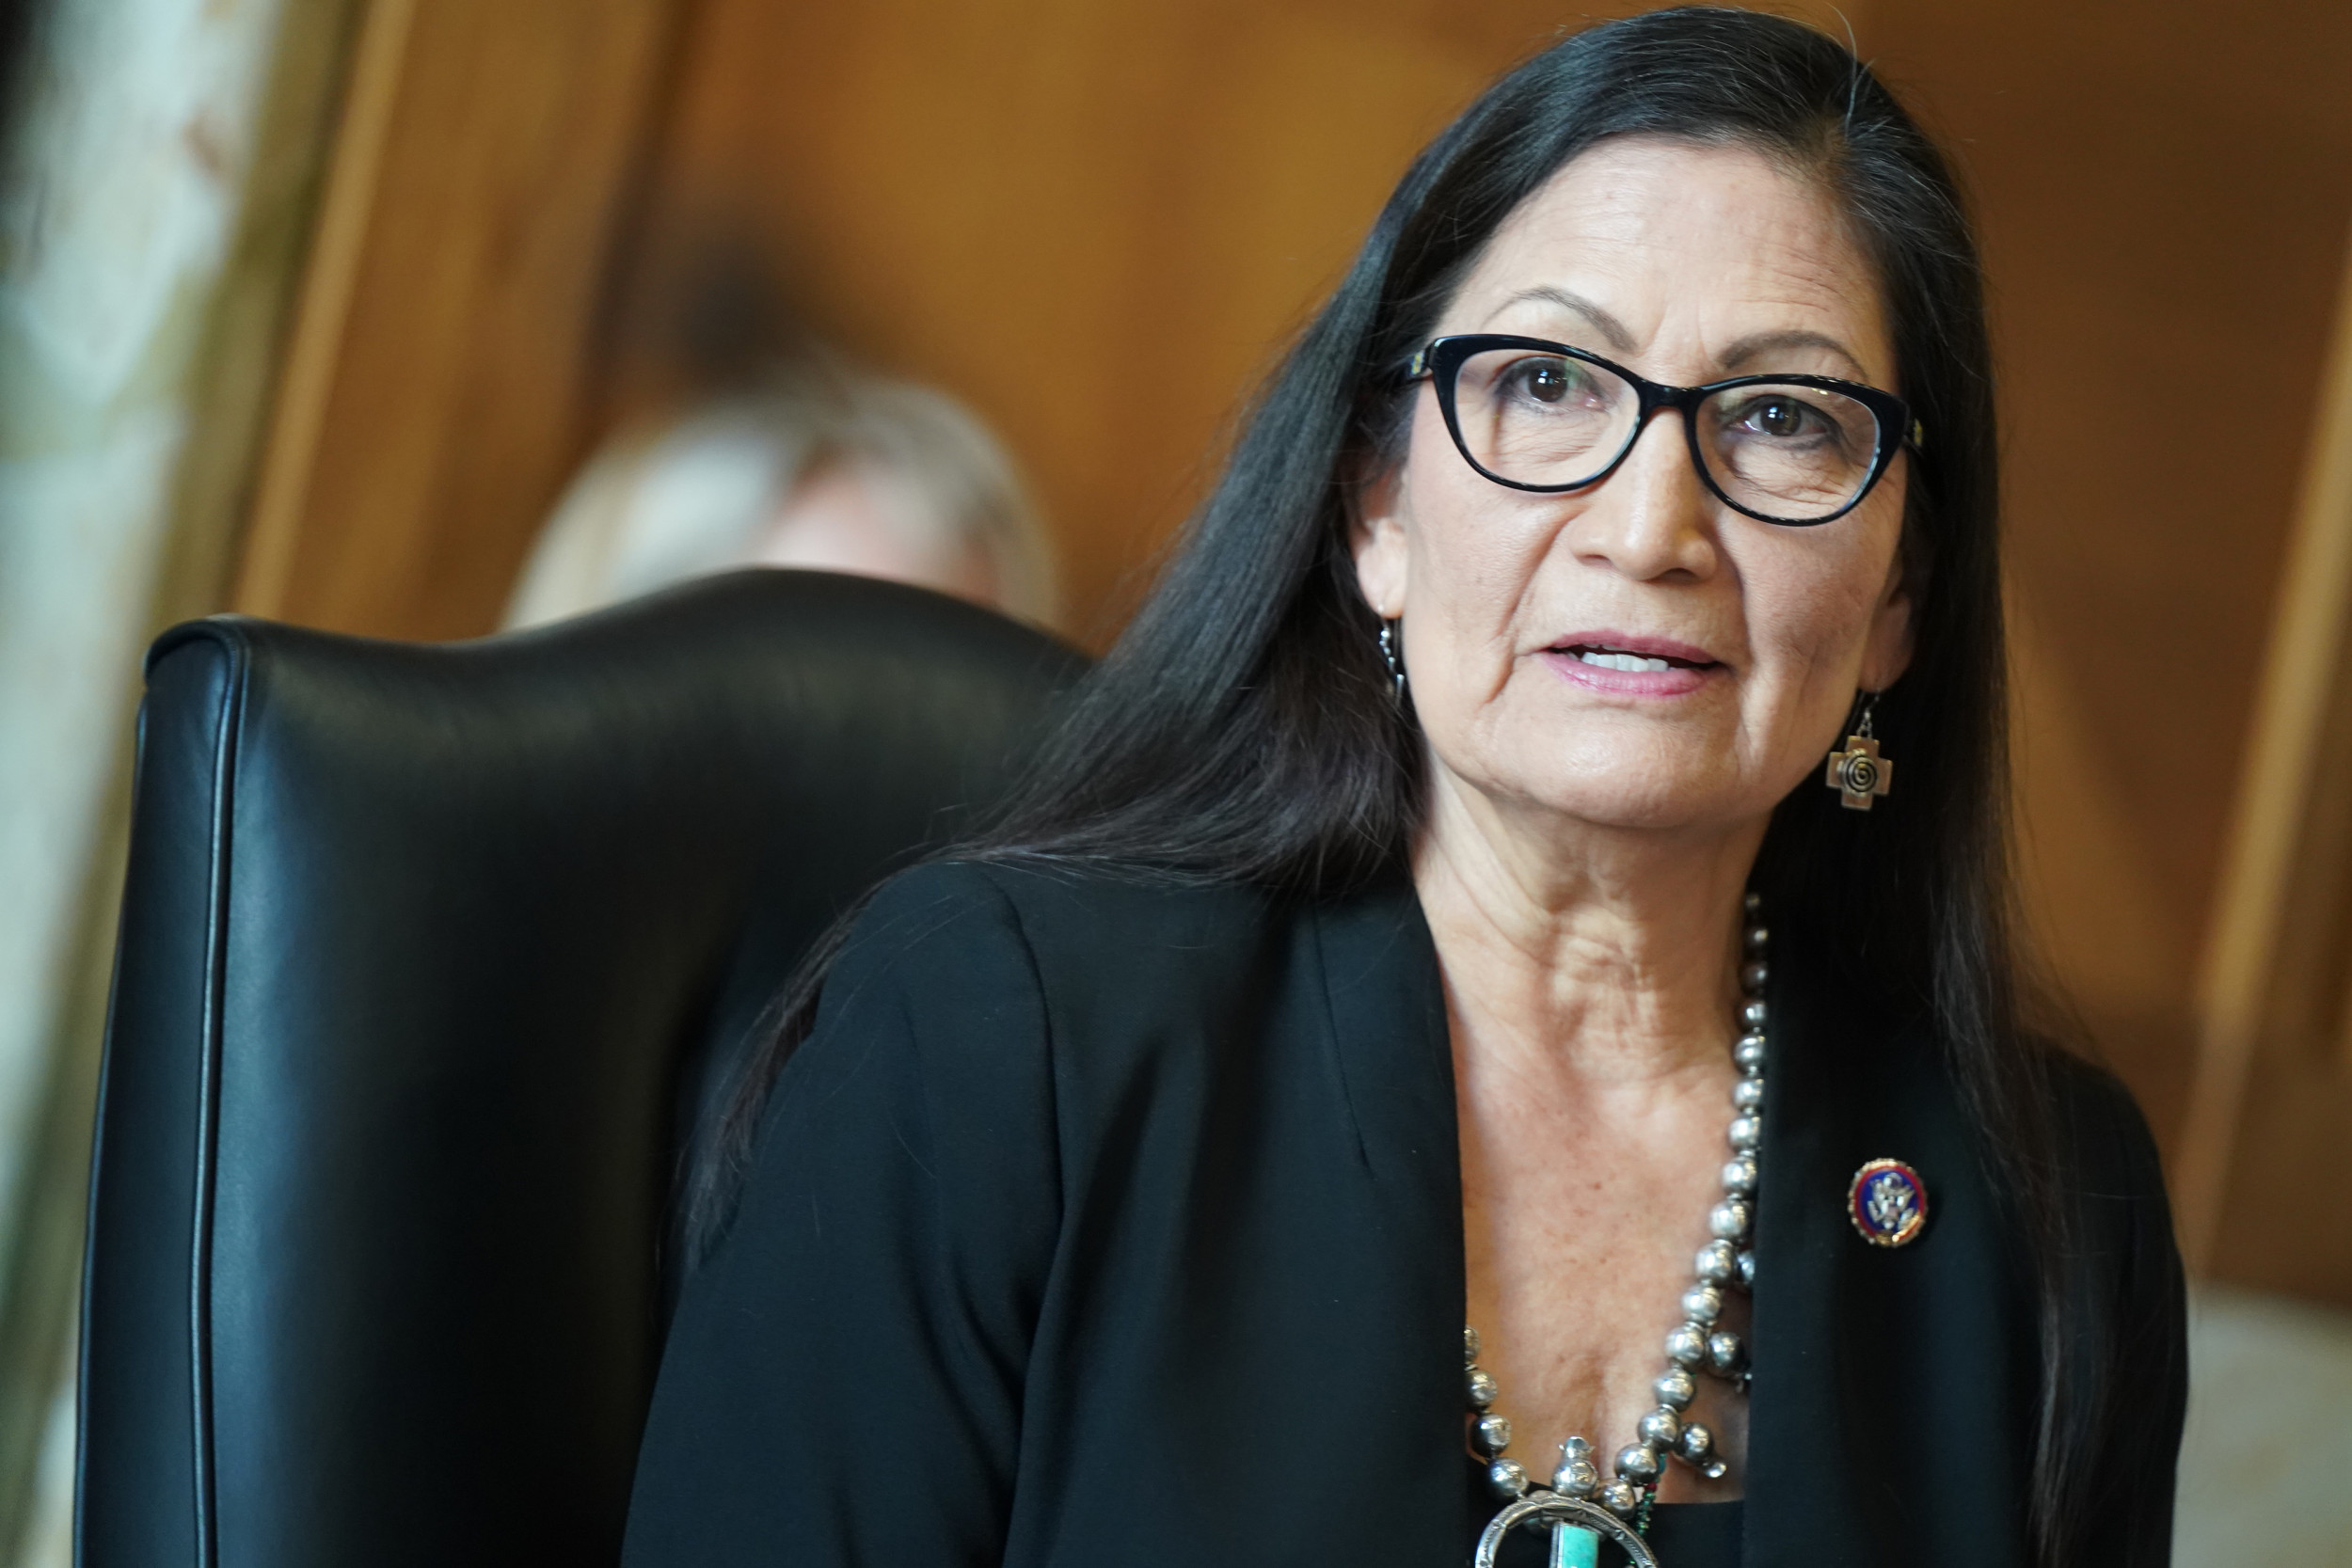 newsweek.com - Emily Czachor - Deb Haaland defends suggestion that federally legal marijuana could fund schools nationwide